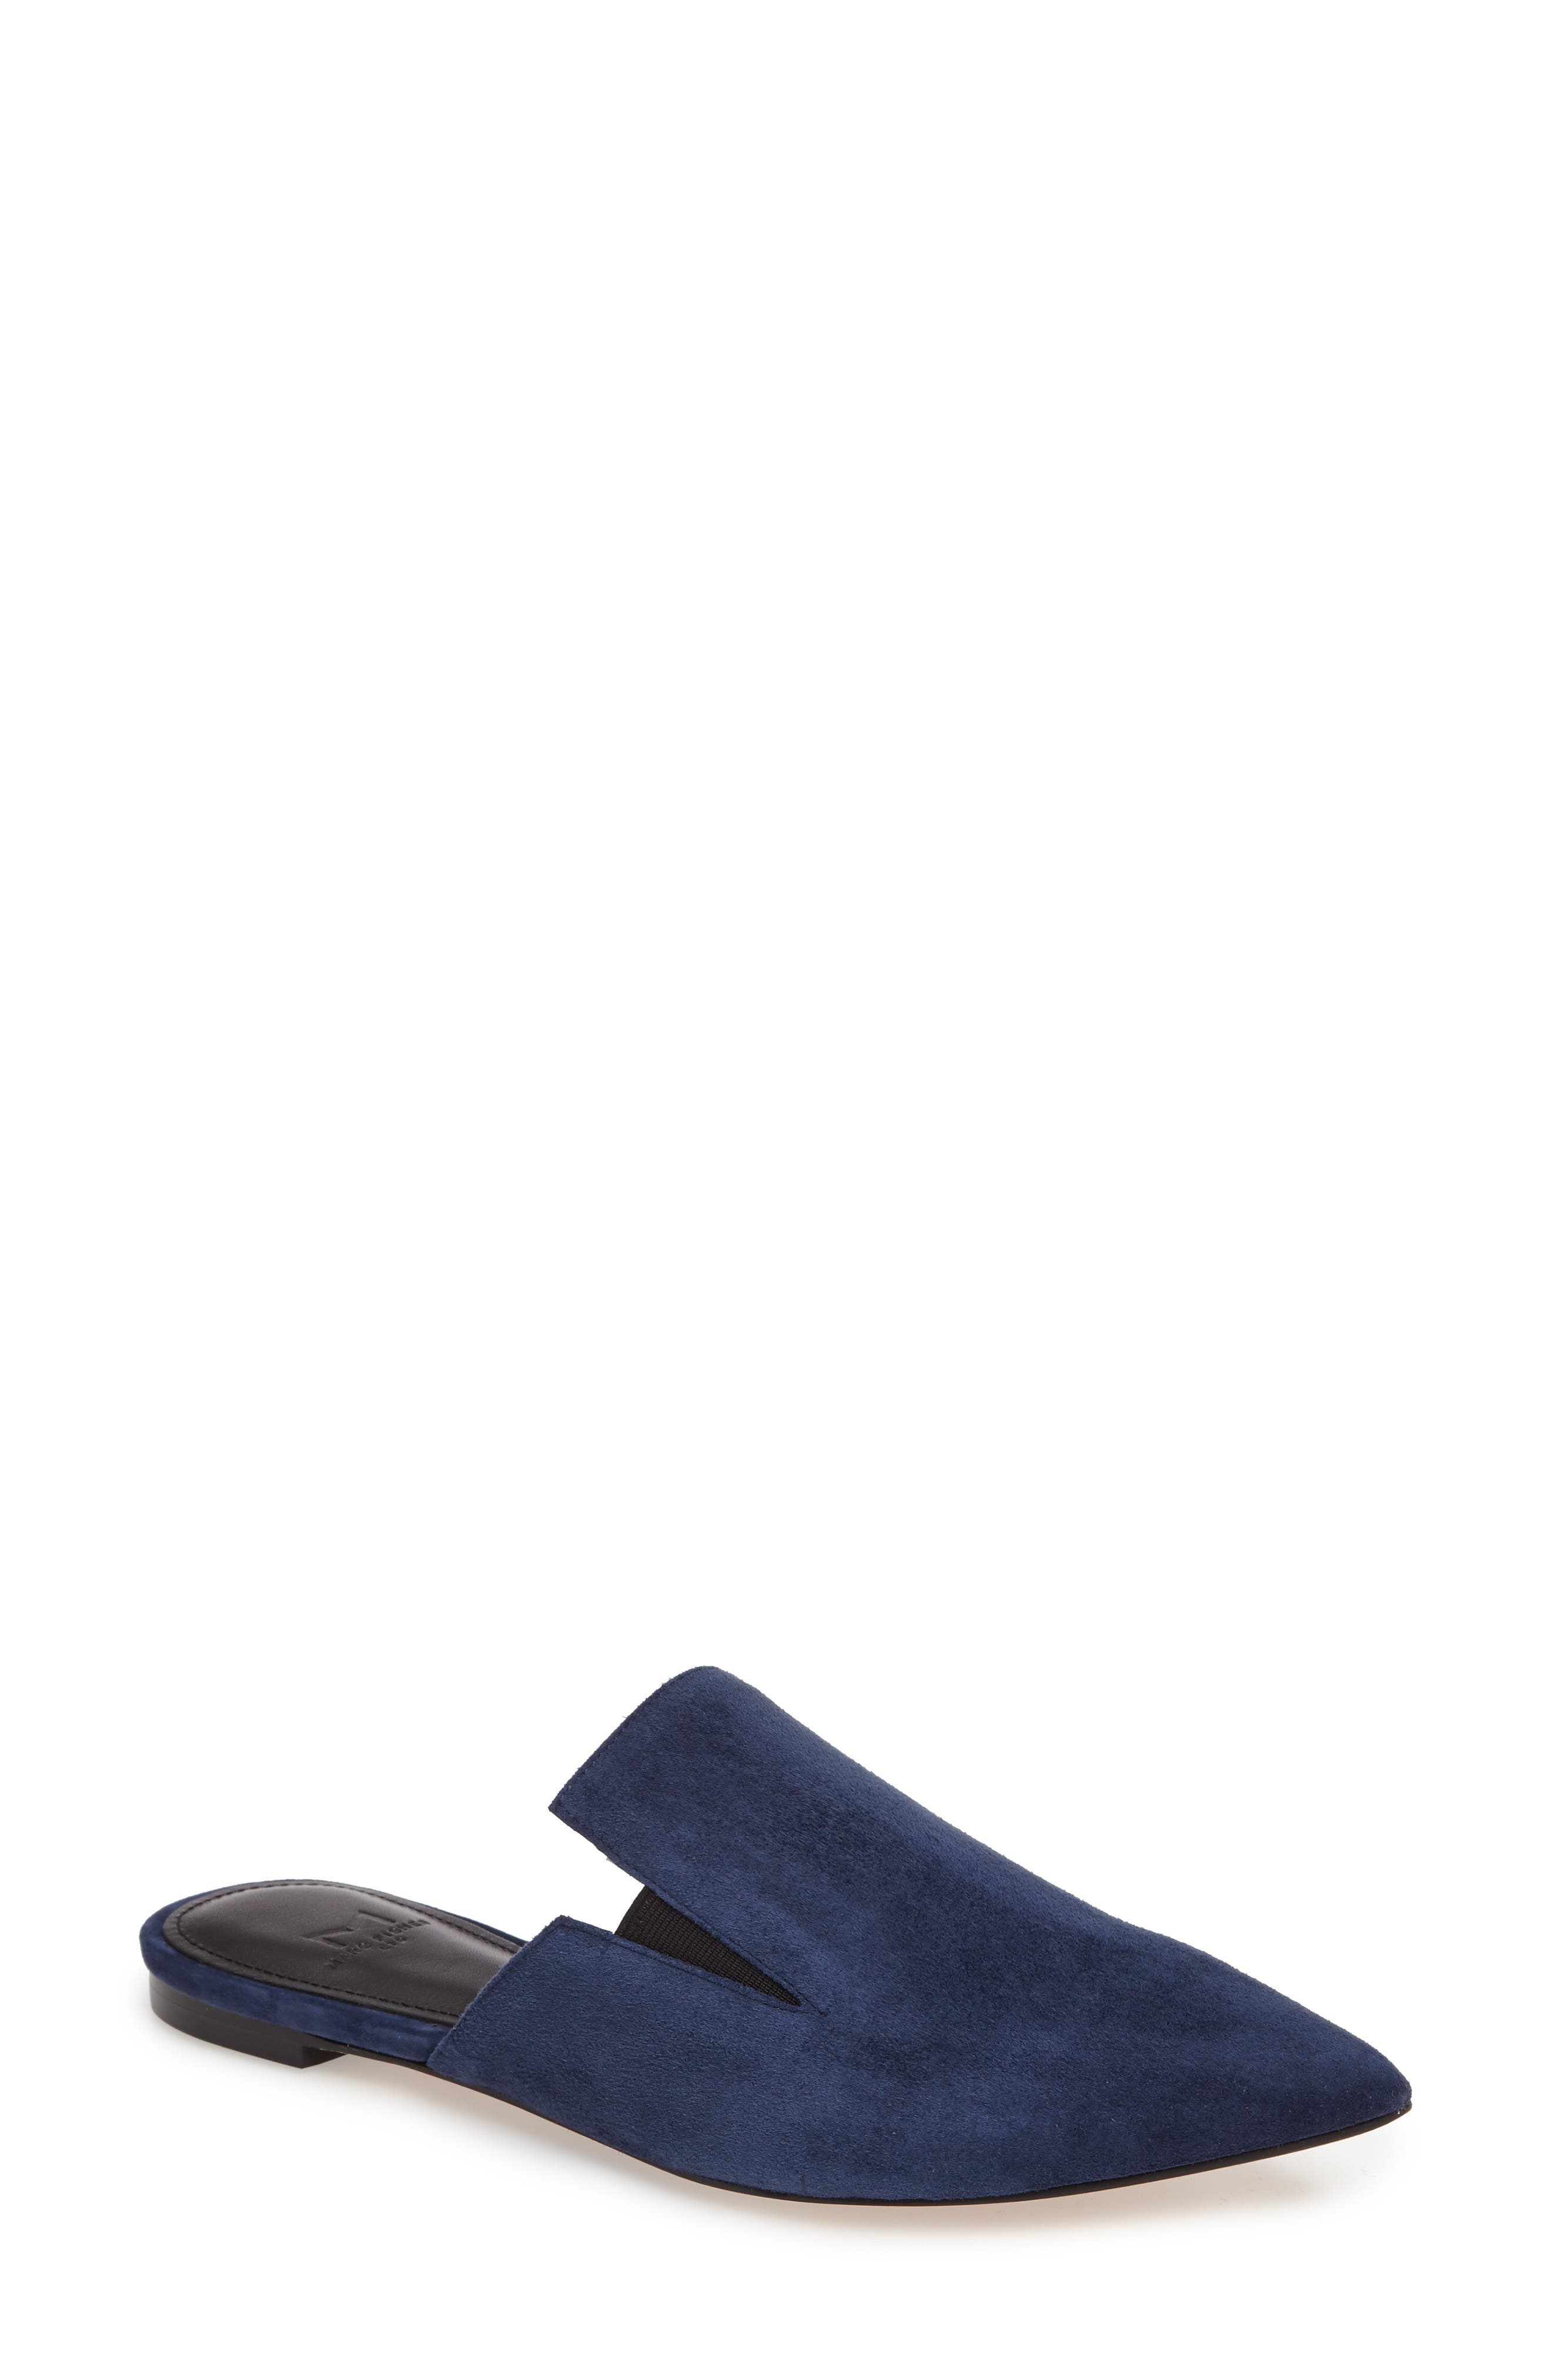 Alternate Image 1 Selected - Marc Fisher LTD Shiloh Flat Mule (Women)